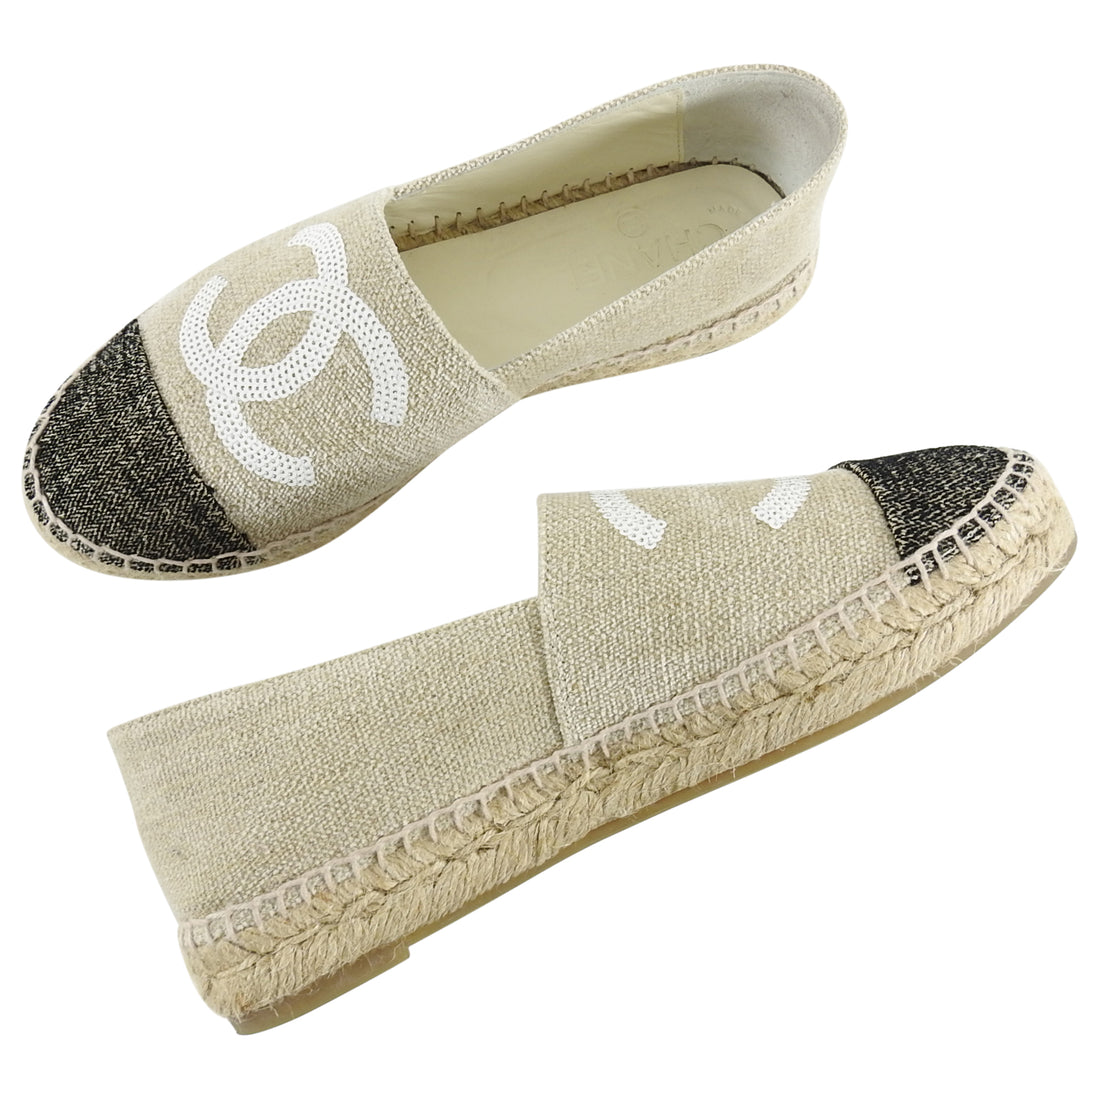 Chanel 16C Canvas Flat Espadrille with Sequin CC Logo - 36.5